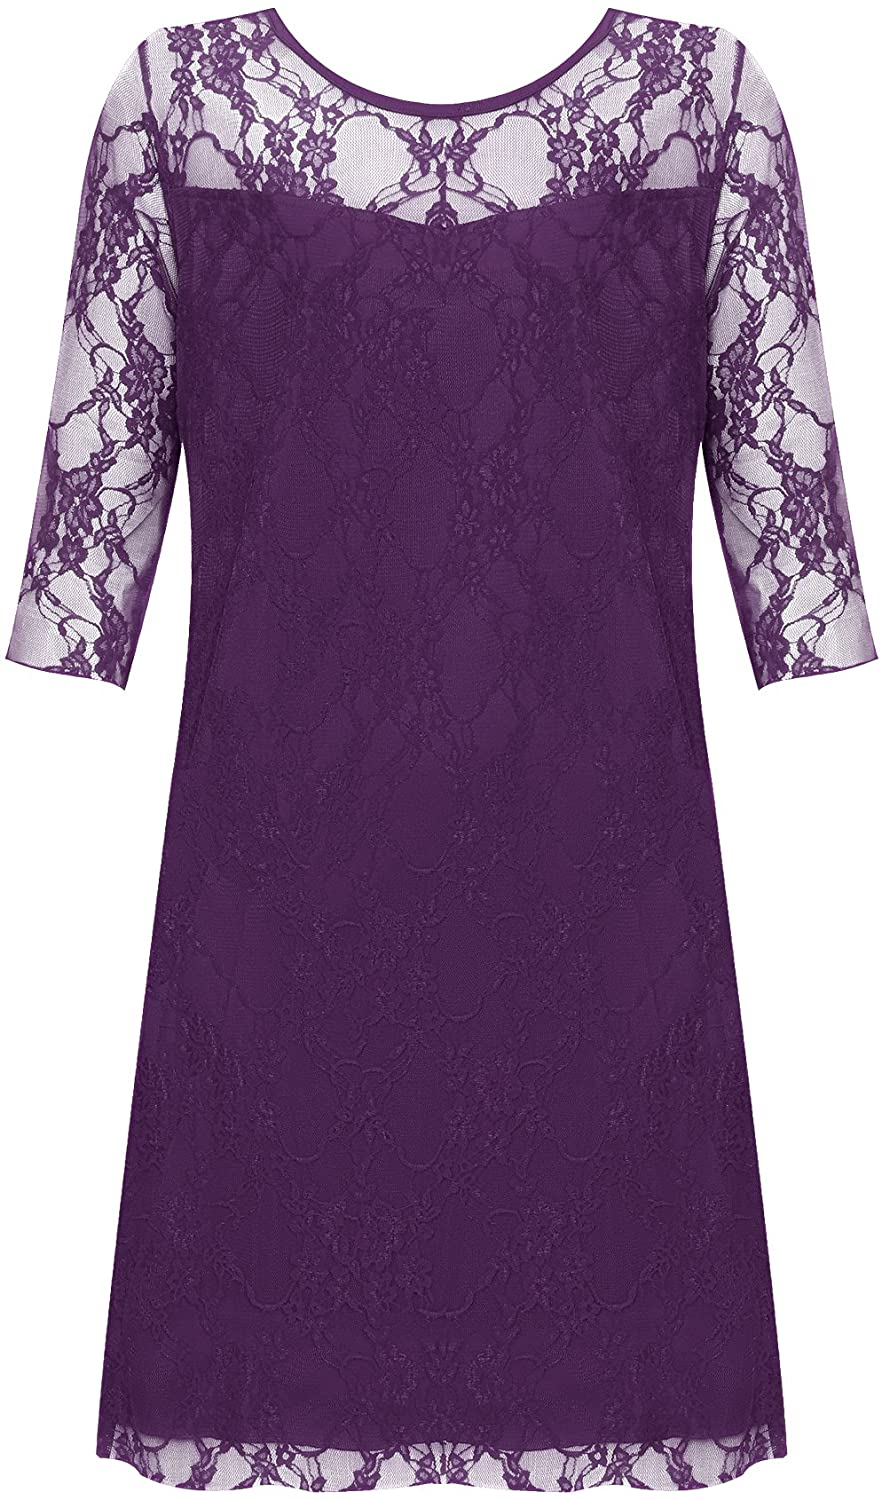 WearAll New Ladies Lace Lined 3/4 Sleeve Plus Size Womens Knee Length Stretch Dress